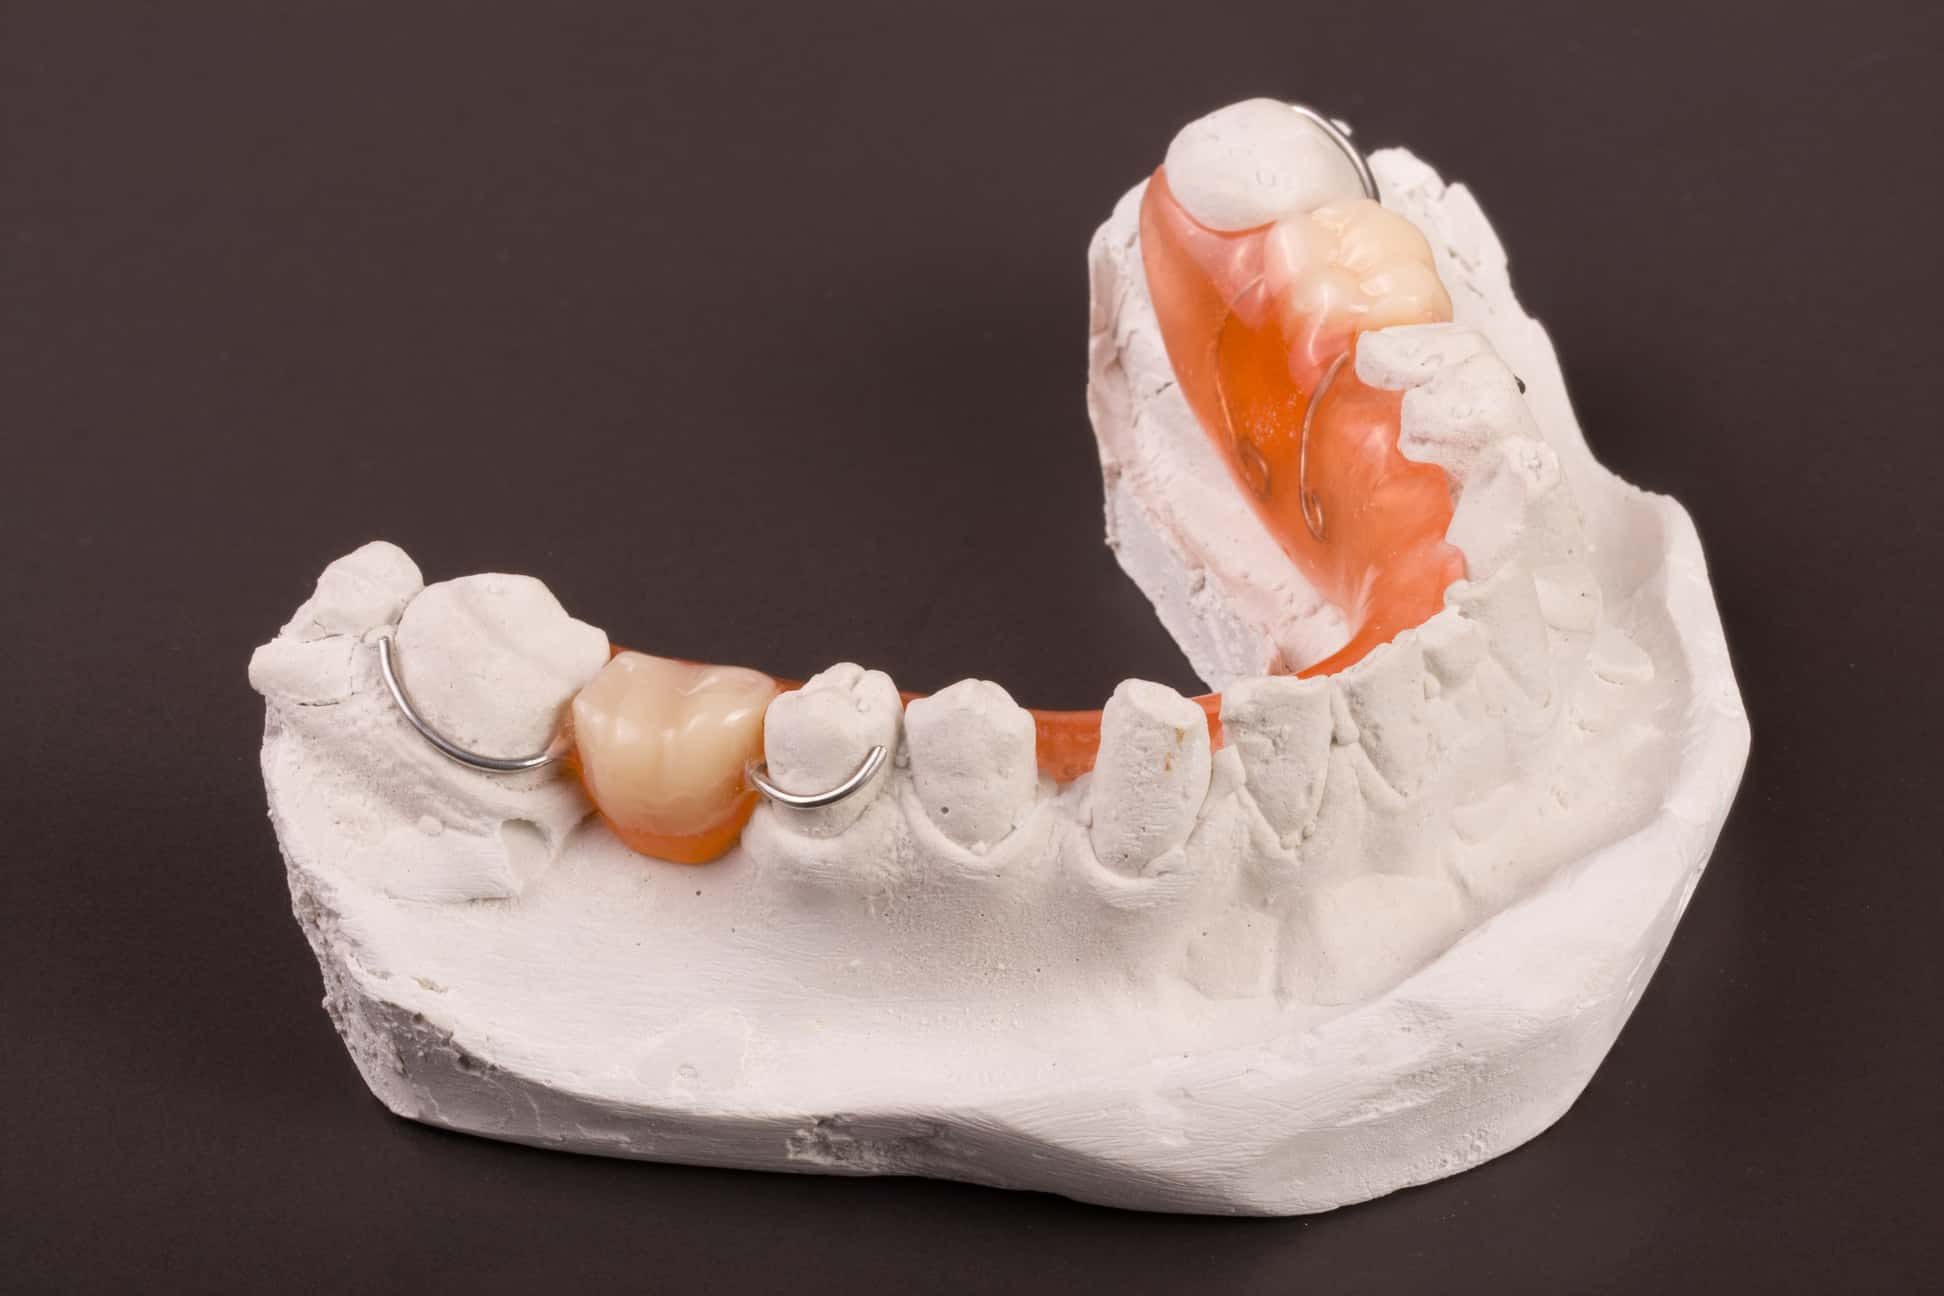 Restoring Your Smile With Partial Dentures